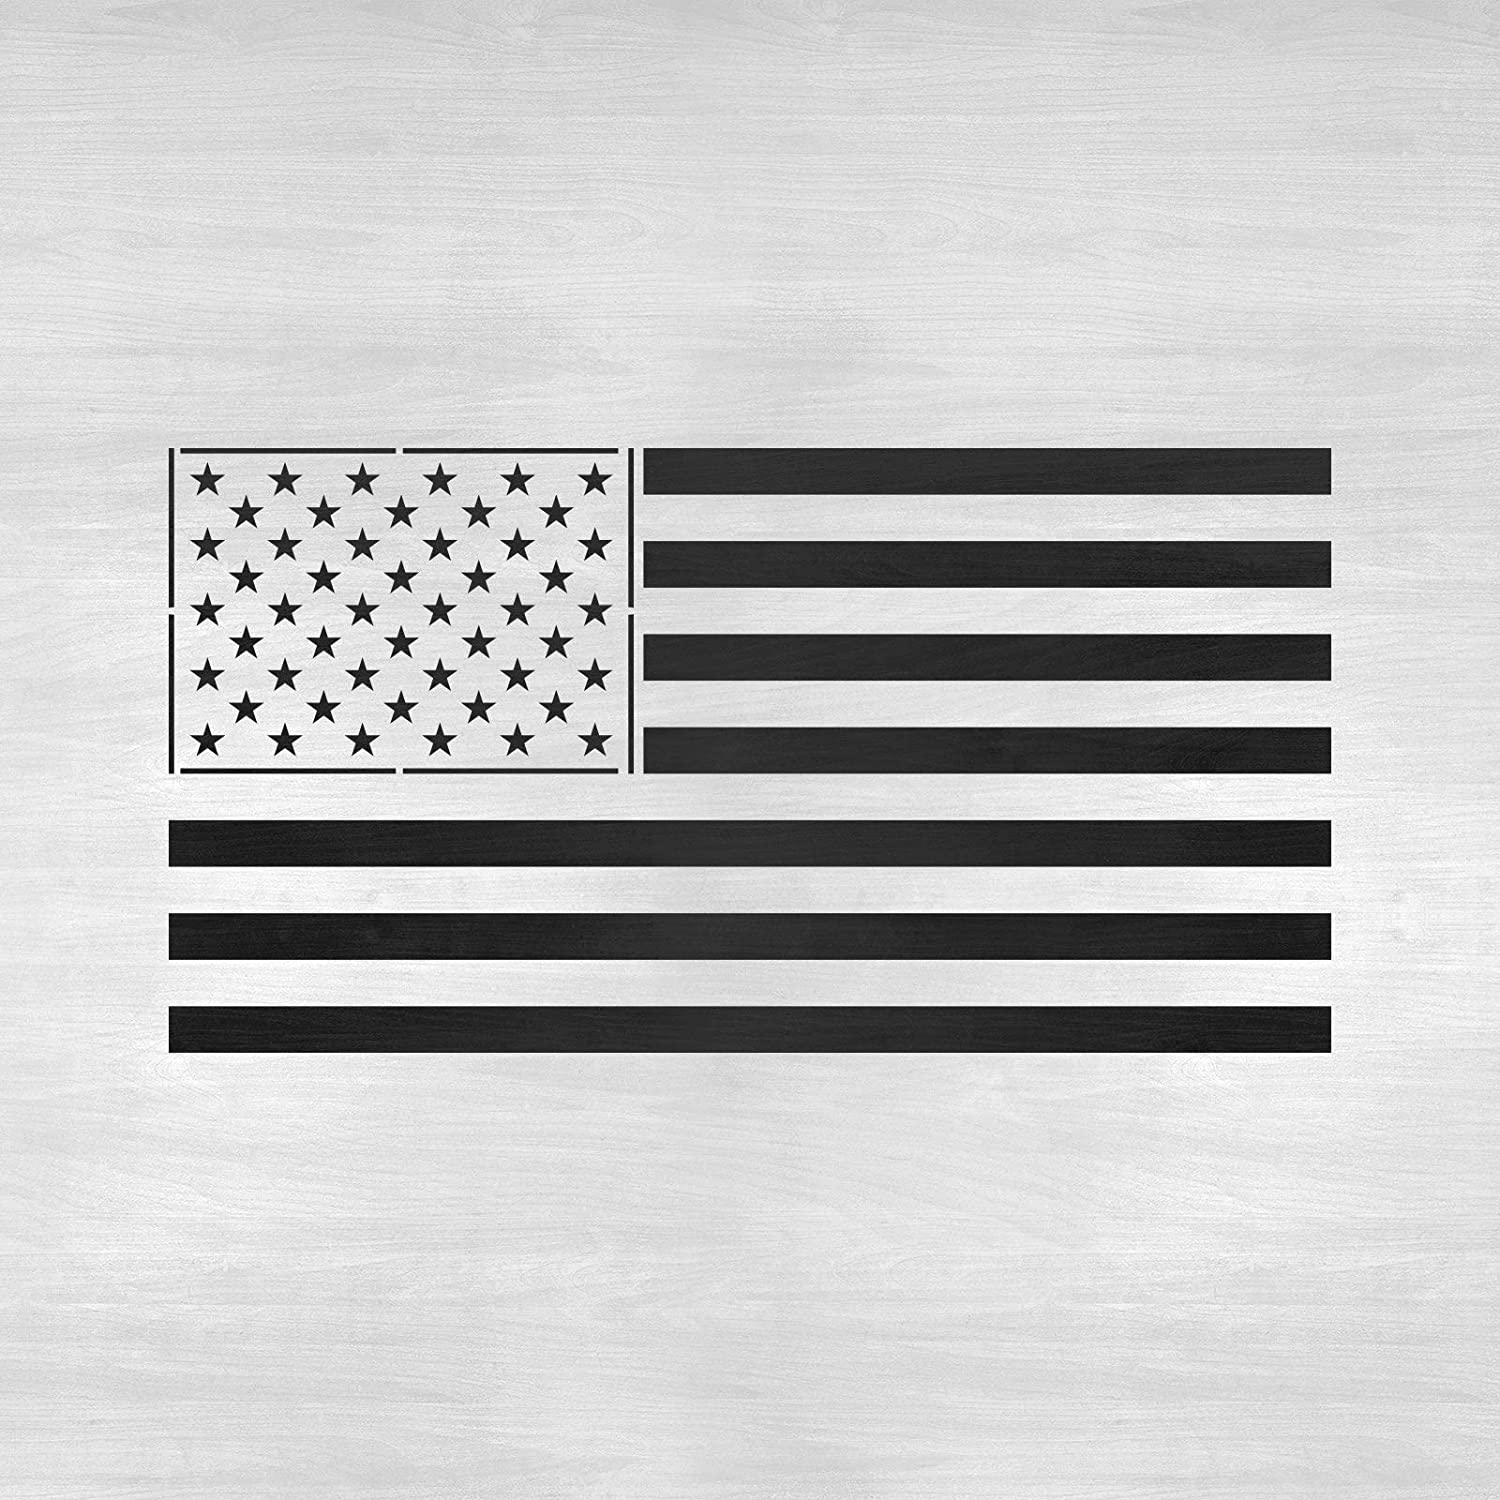 photograph about Printable American Flag Star Stencil named American Flag Stencil Template - Reusable Stencil with A number of Dimensions Offered